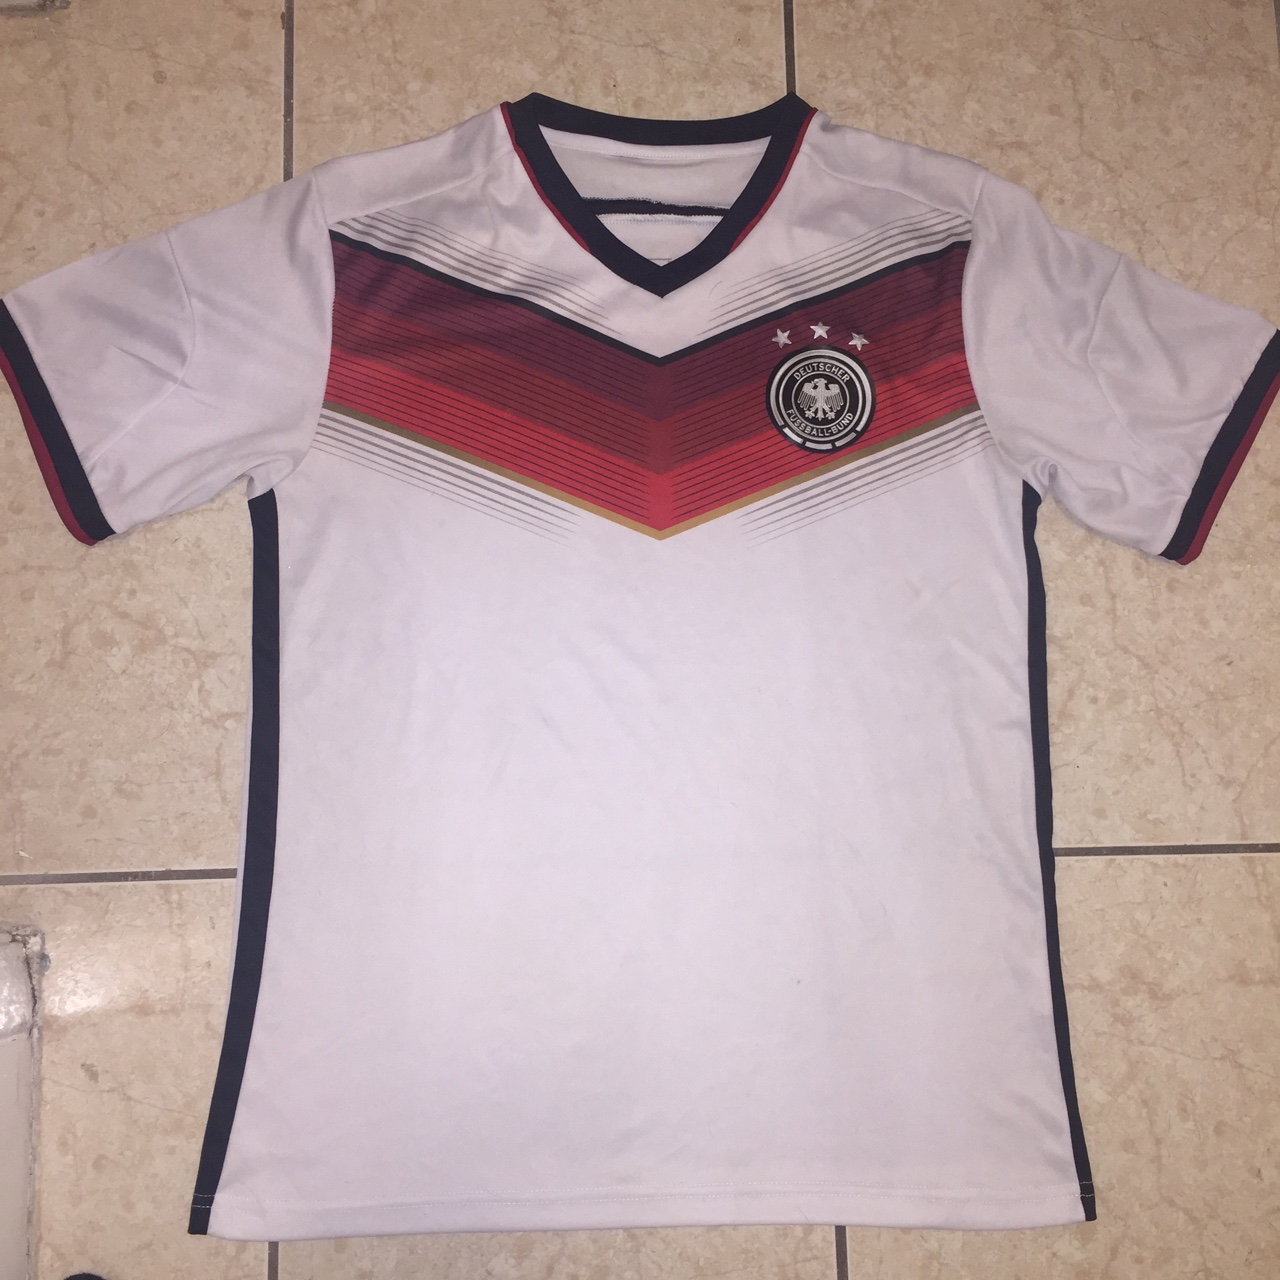 meet 55f10 6a9e9 Germany National Football Team Jersey 🇩🇪 ⚽️ 2014... - Depop